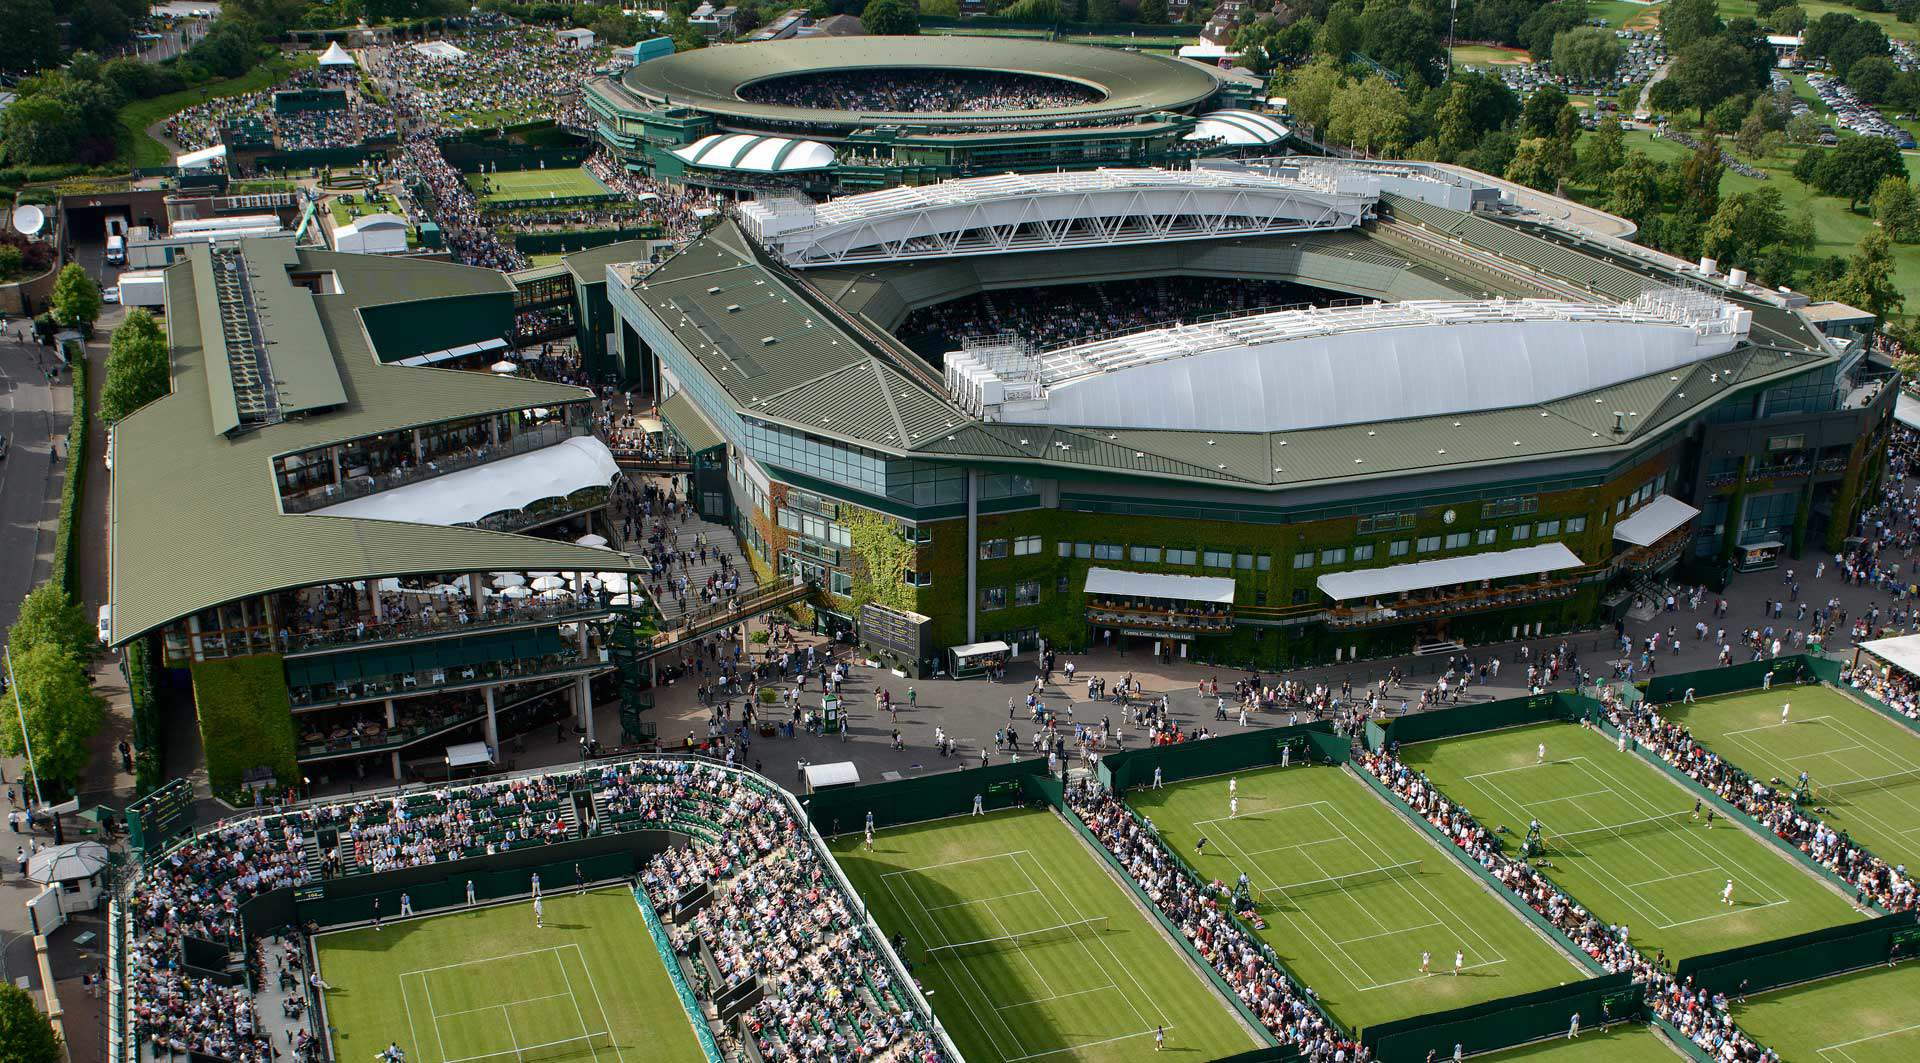 2019 Wimbledon Ticket Packages Book Now Secure Your Spot